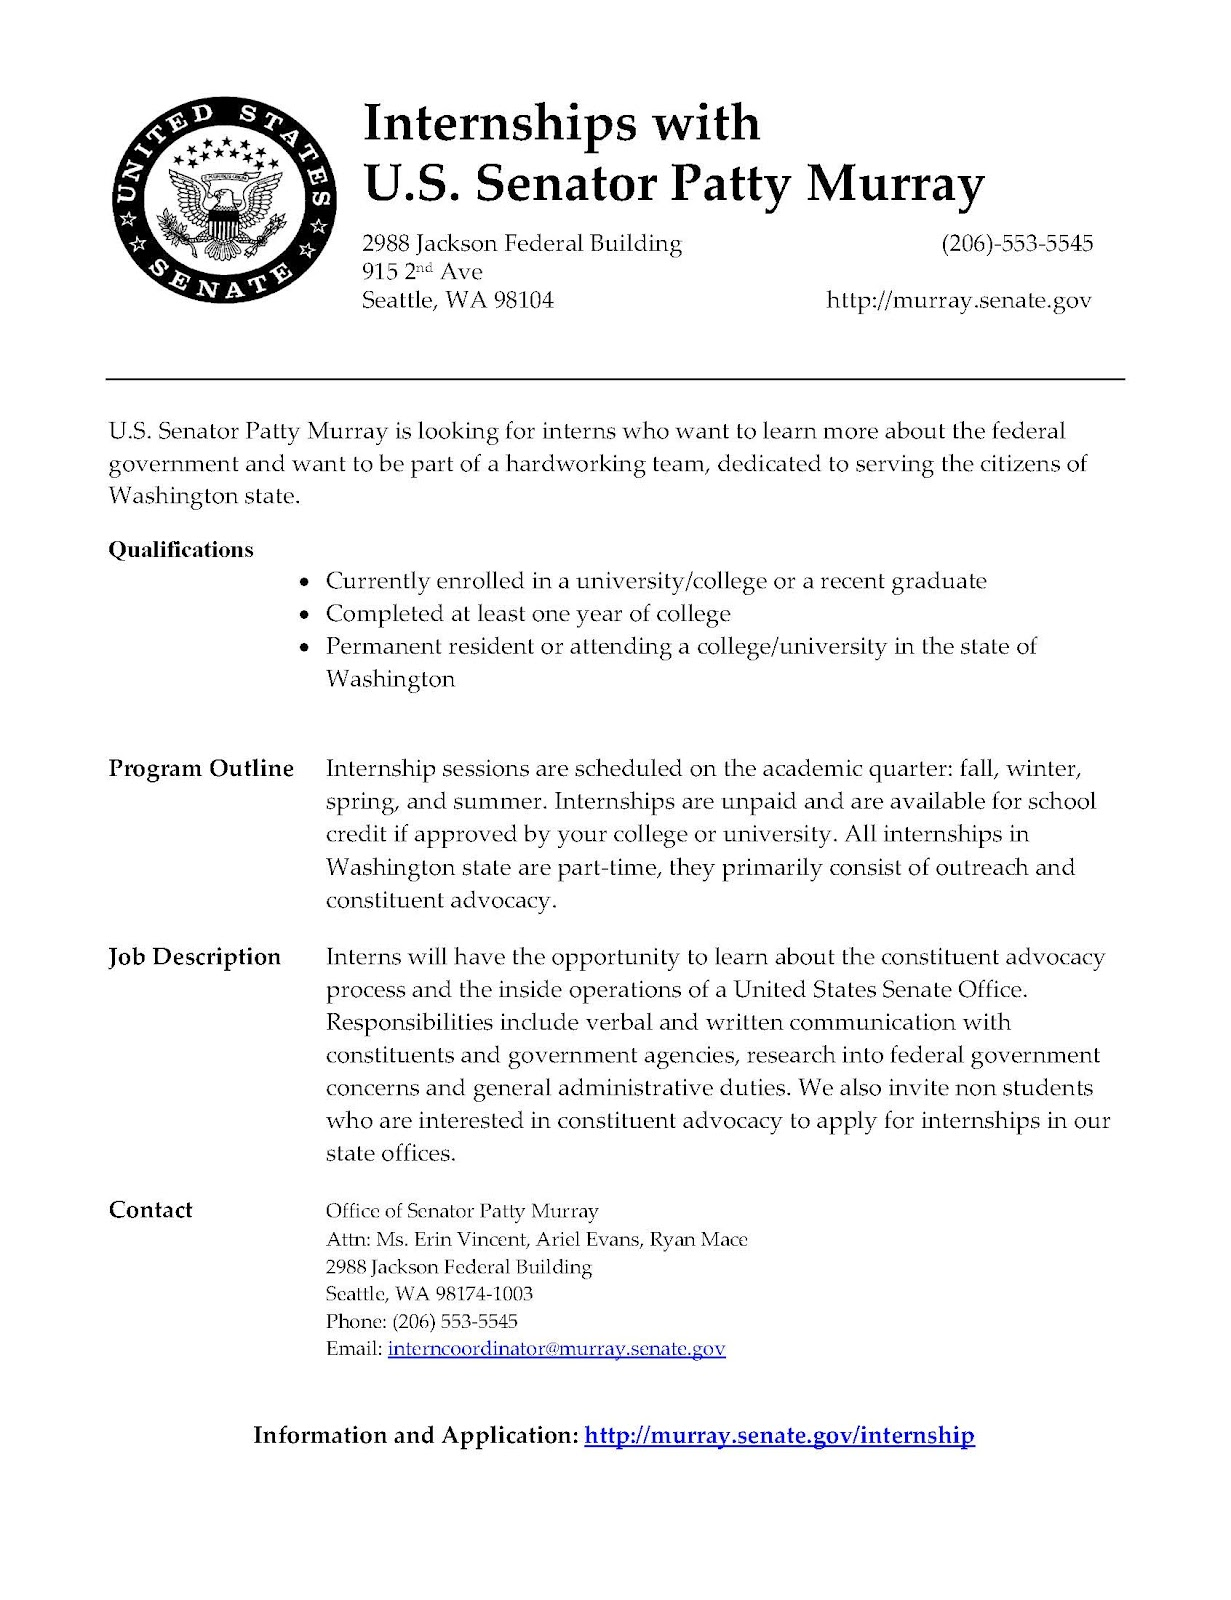 Politics and Government University of Puget Sound August 2012 – Political Internship Cover Letter